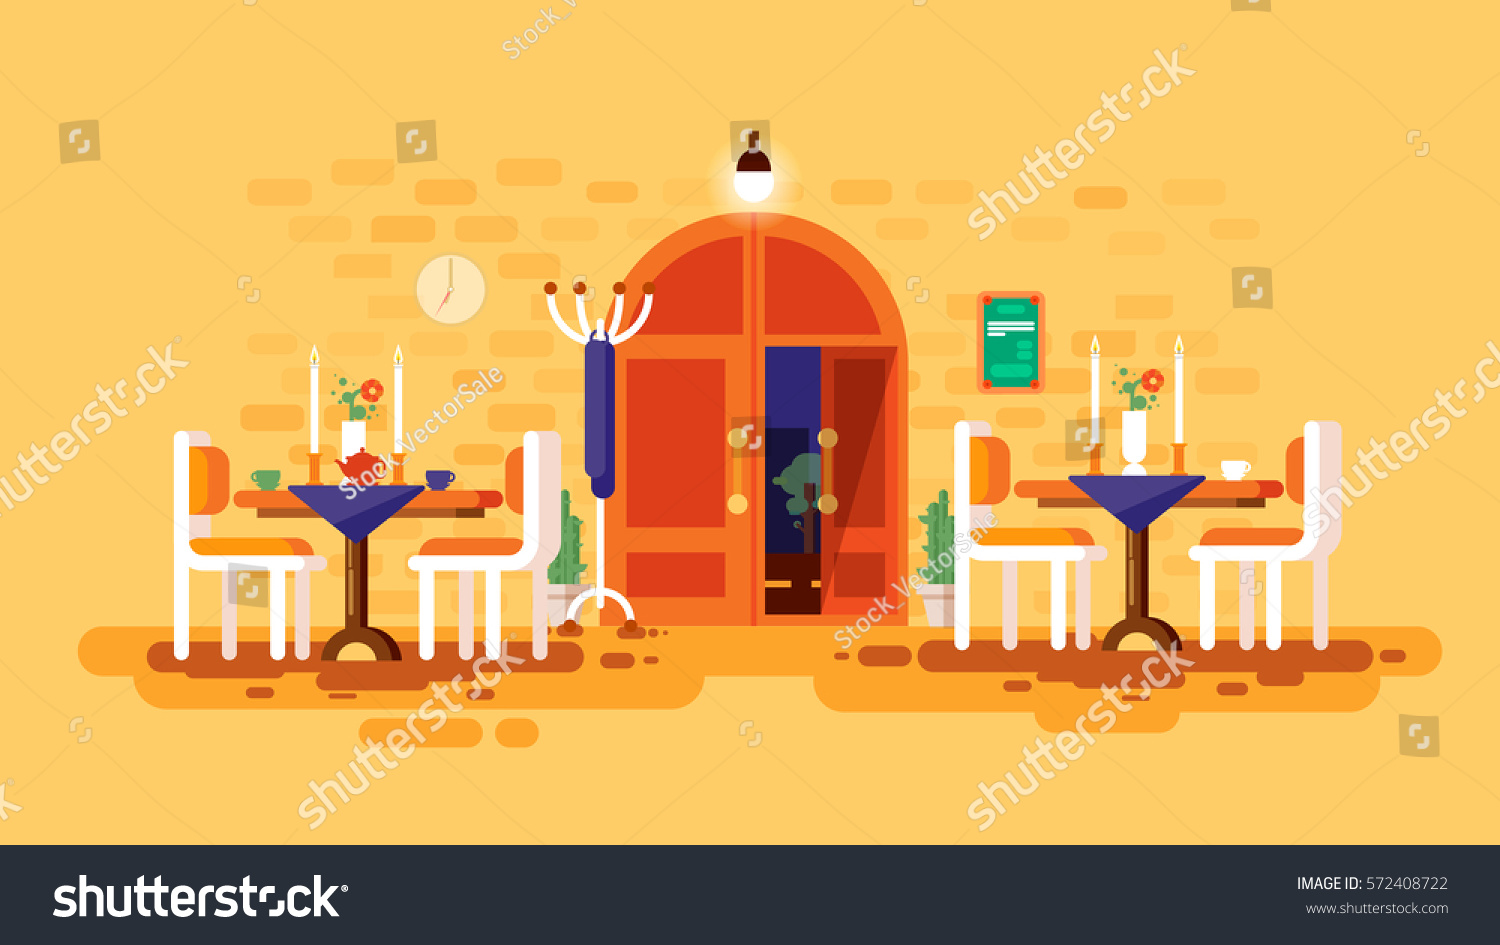 Stock Vector Illustration Interior Entrance Door Cafe Restaurant Lounge Dining Table Lunch Room Snack Bar